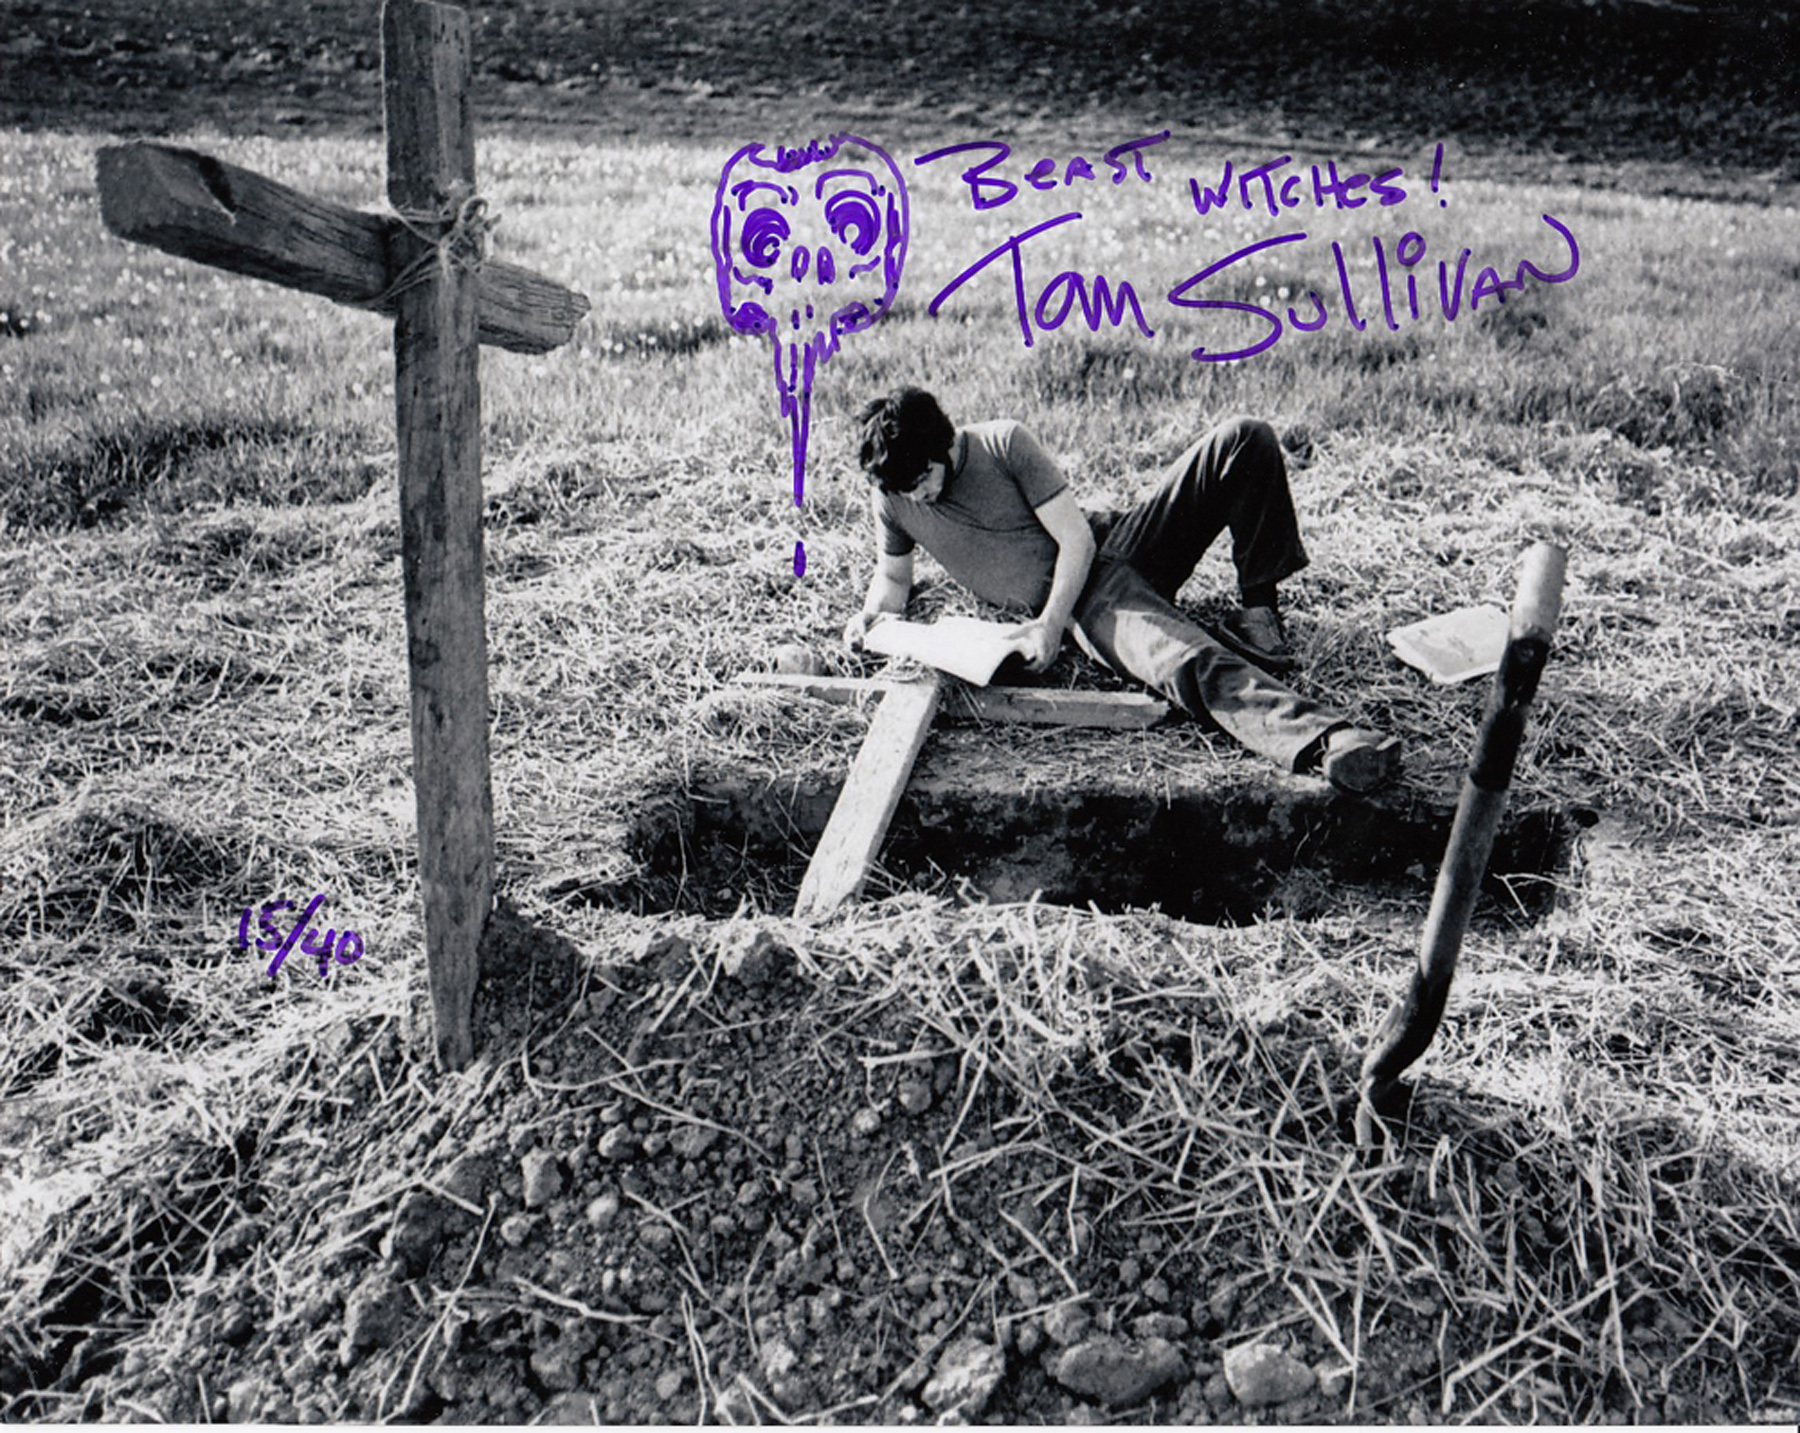 Blowout Sale! Evil Dead Tom Sullivan hand signed 10x8 photo. This beautiful 10x8 hand signed photo